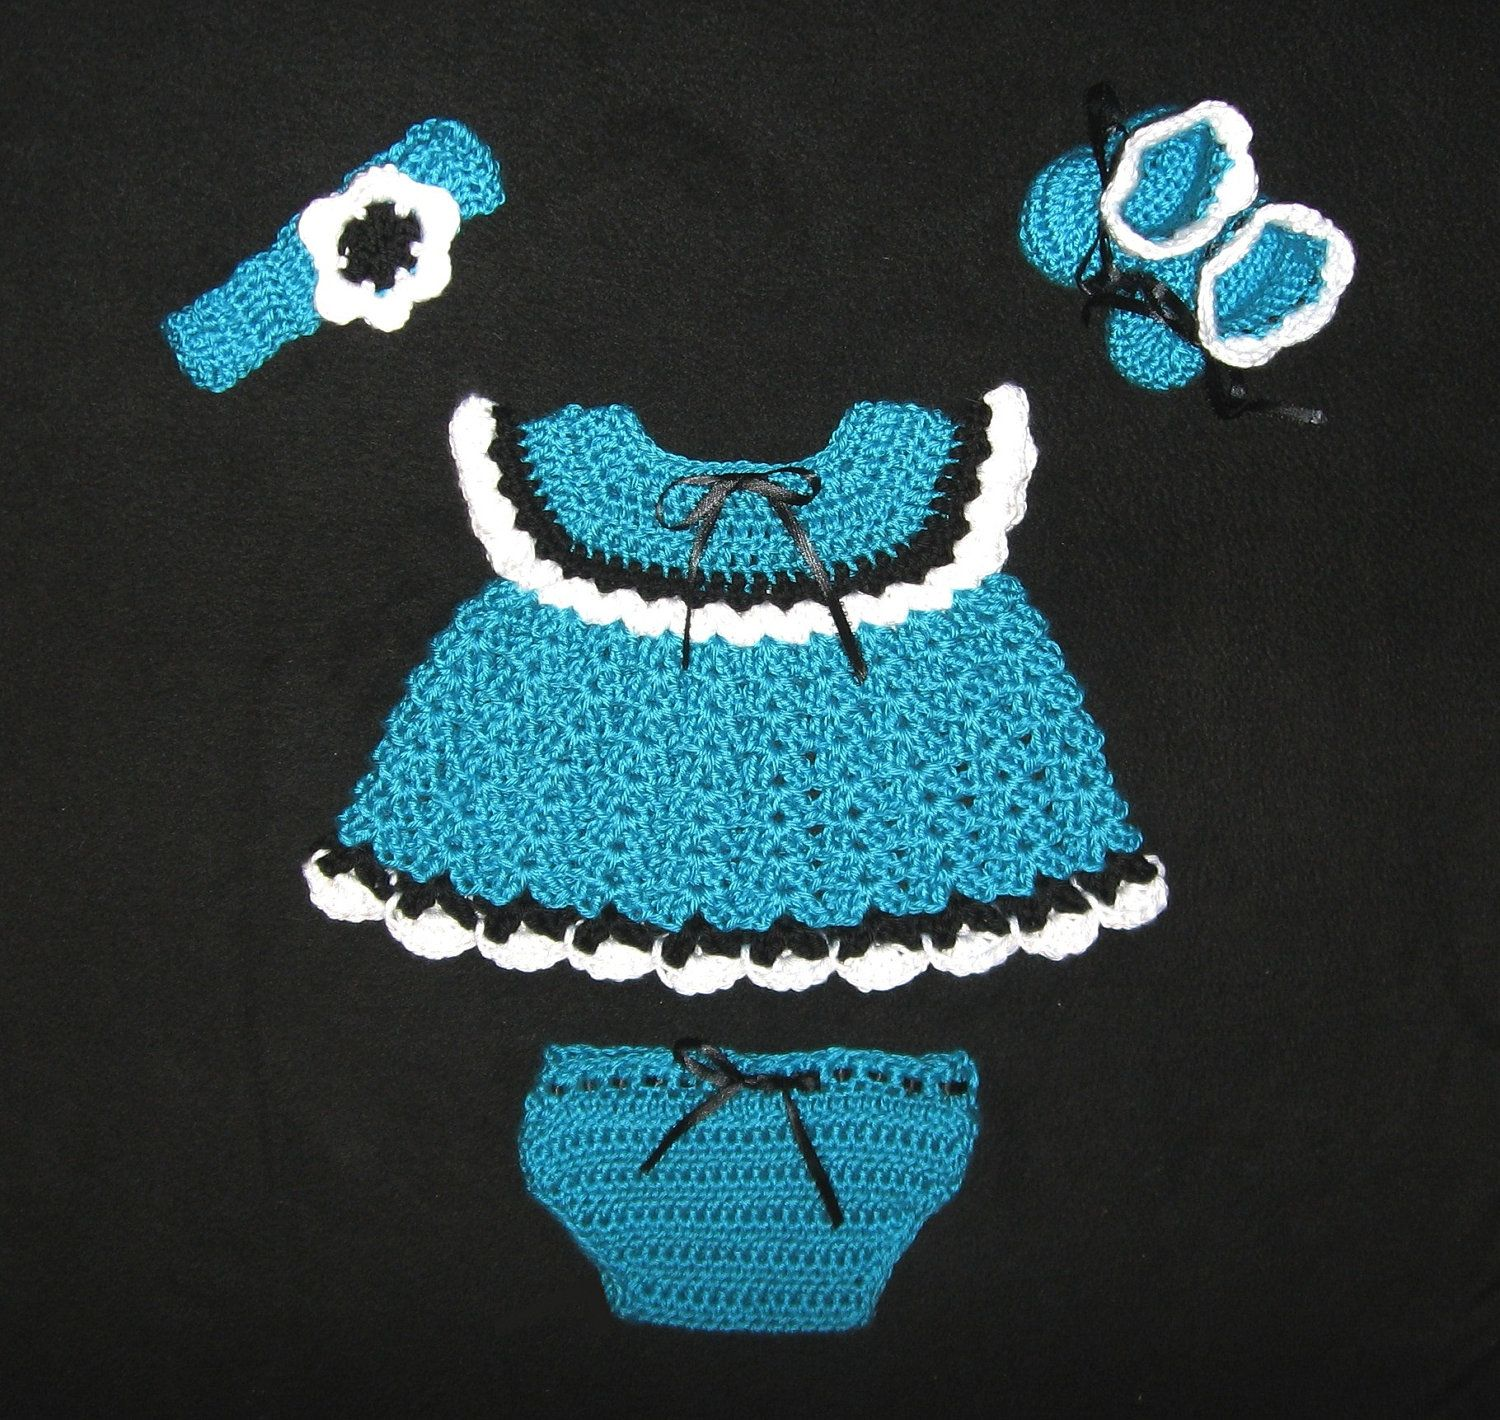 Diaper Dress Set with Hat, Booties, and Diaper Cover Newborn to 3 months READY TO SHIP. $24.00, via Etsy.